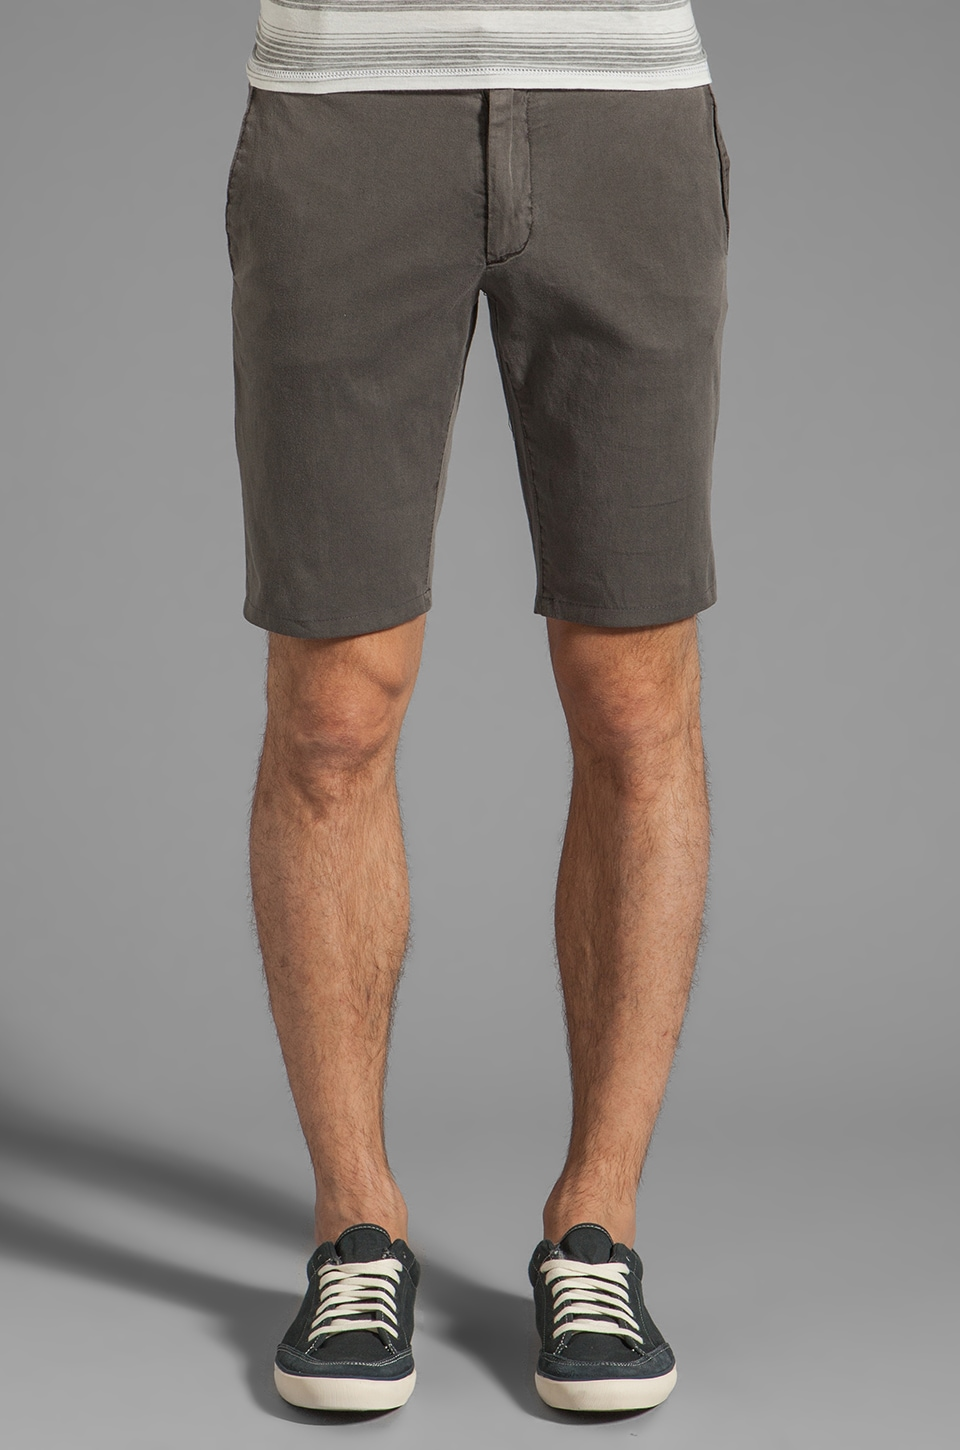 Cohesive & co. Castaway Chino Short in Grey